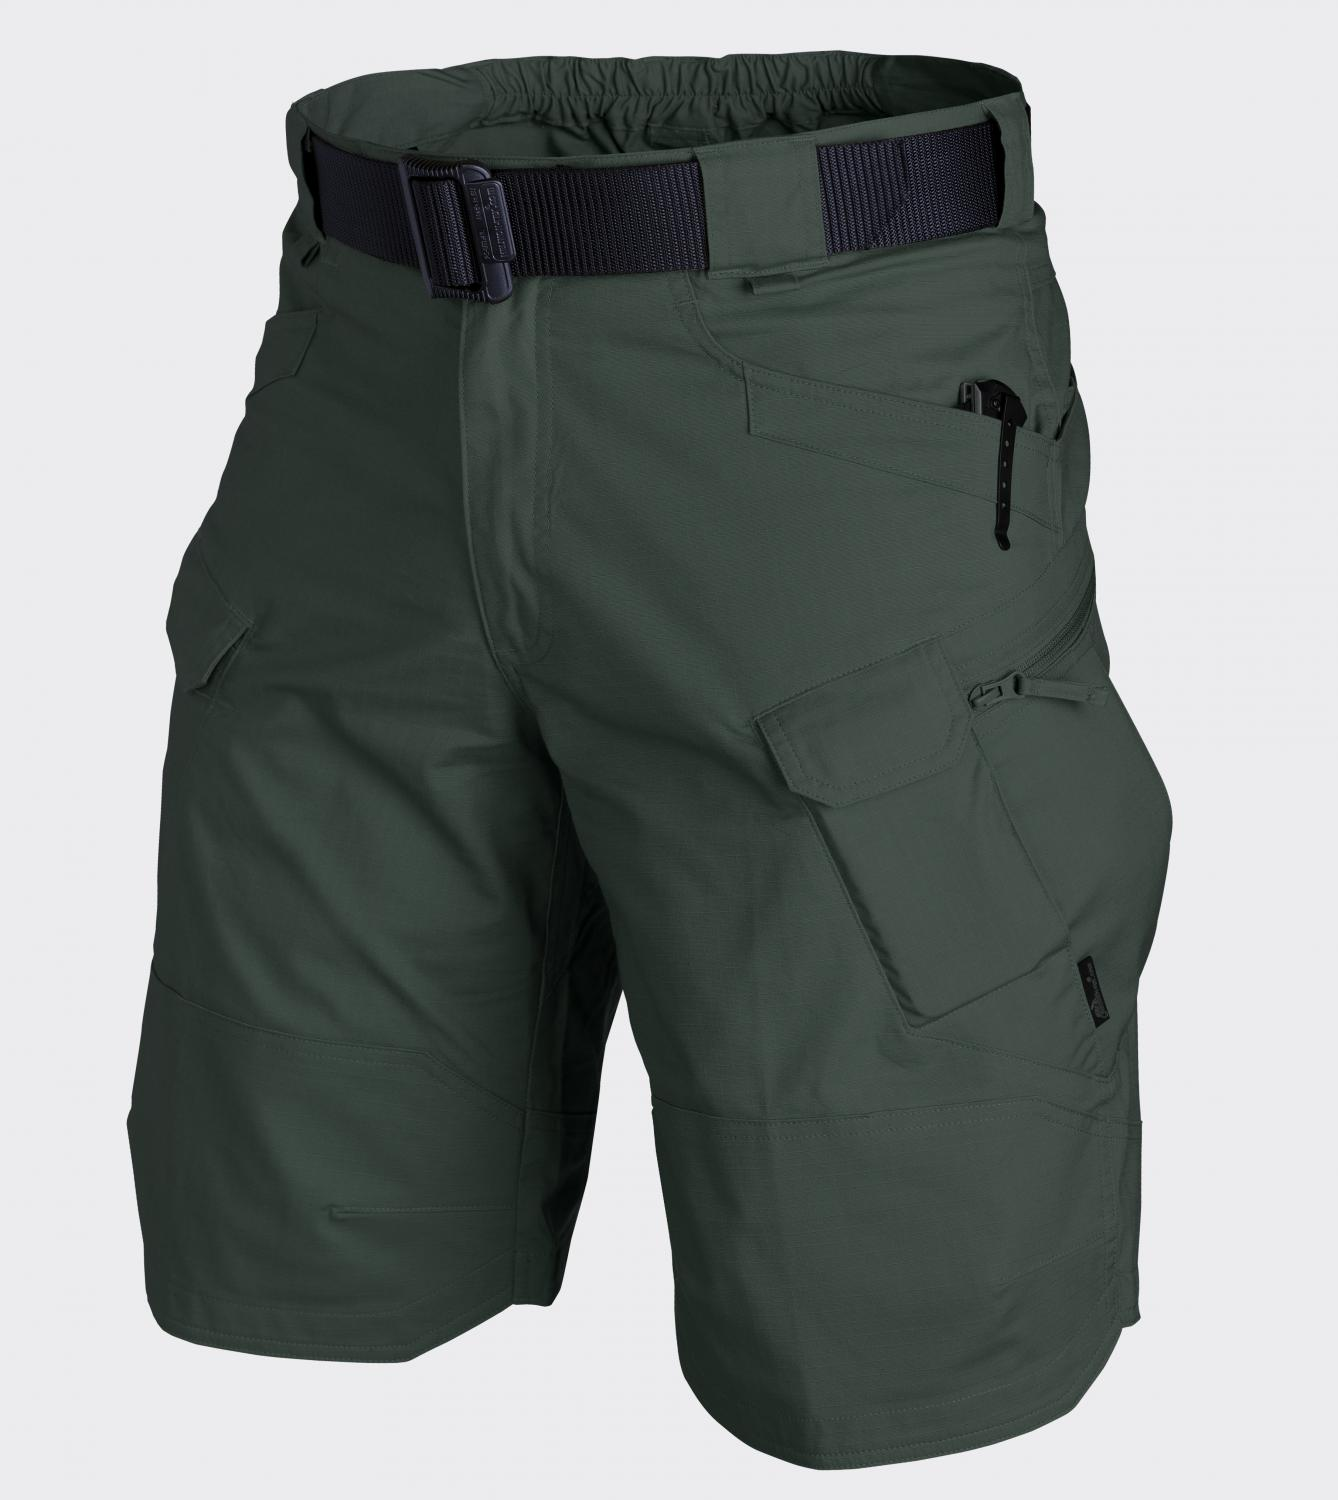 URBAN TACTICAL SHORTS® 11'' - PolyCotton Ripstop Jungle Green